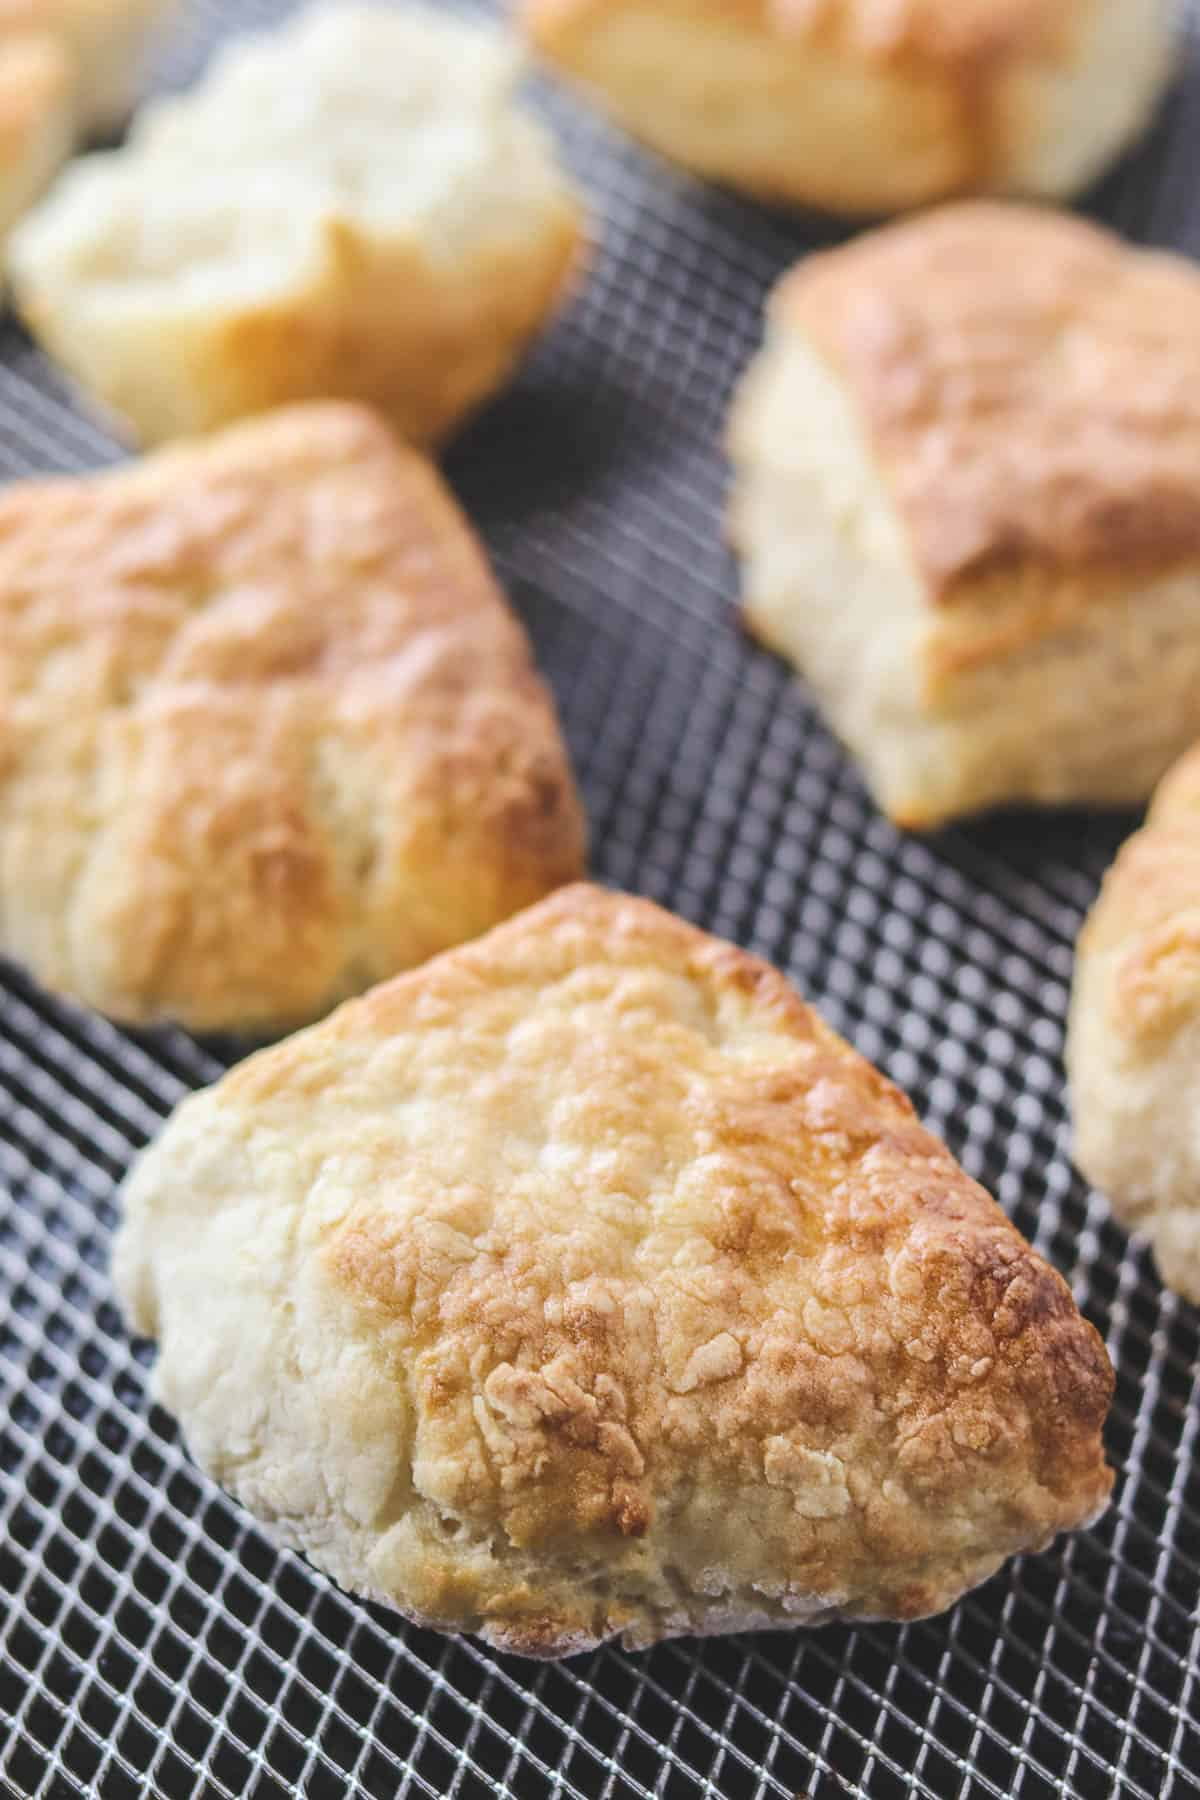 cooked biscuits in the air fryer basket